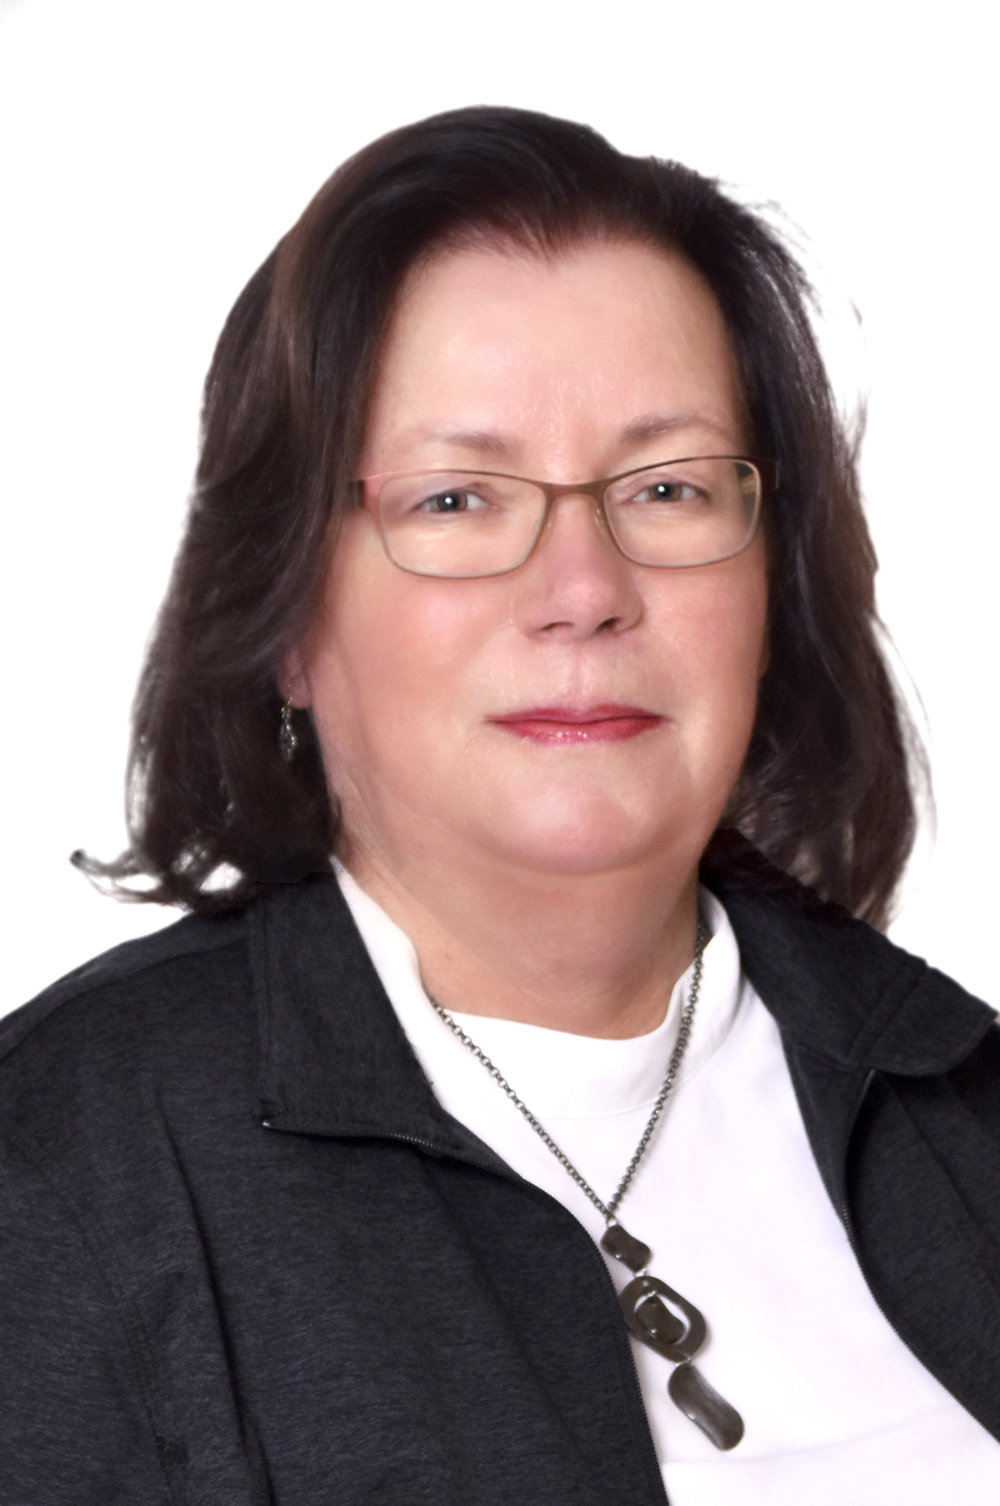 Meet Susan - I specialize in mood and anxiety disorder, supporting families, and accessibility for differently abled people.